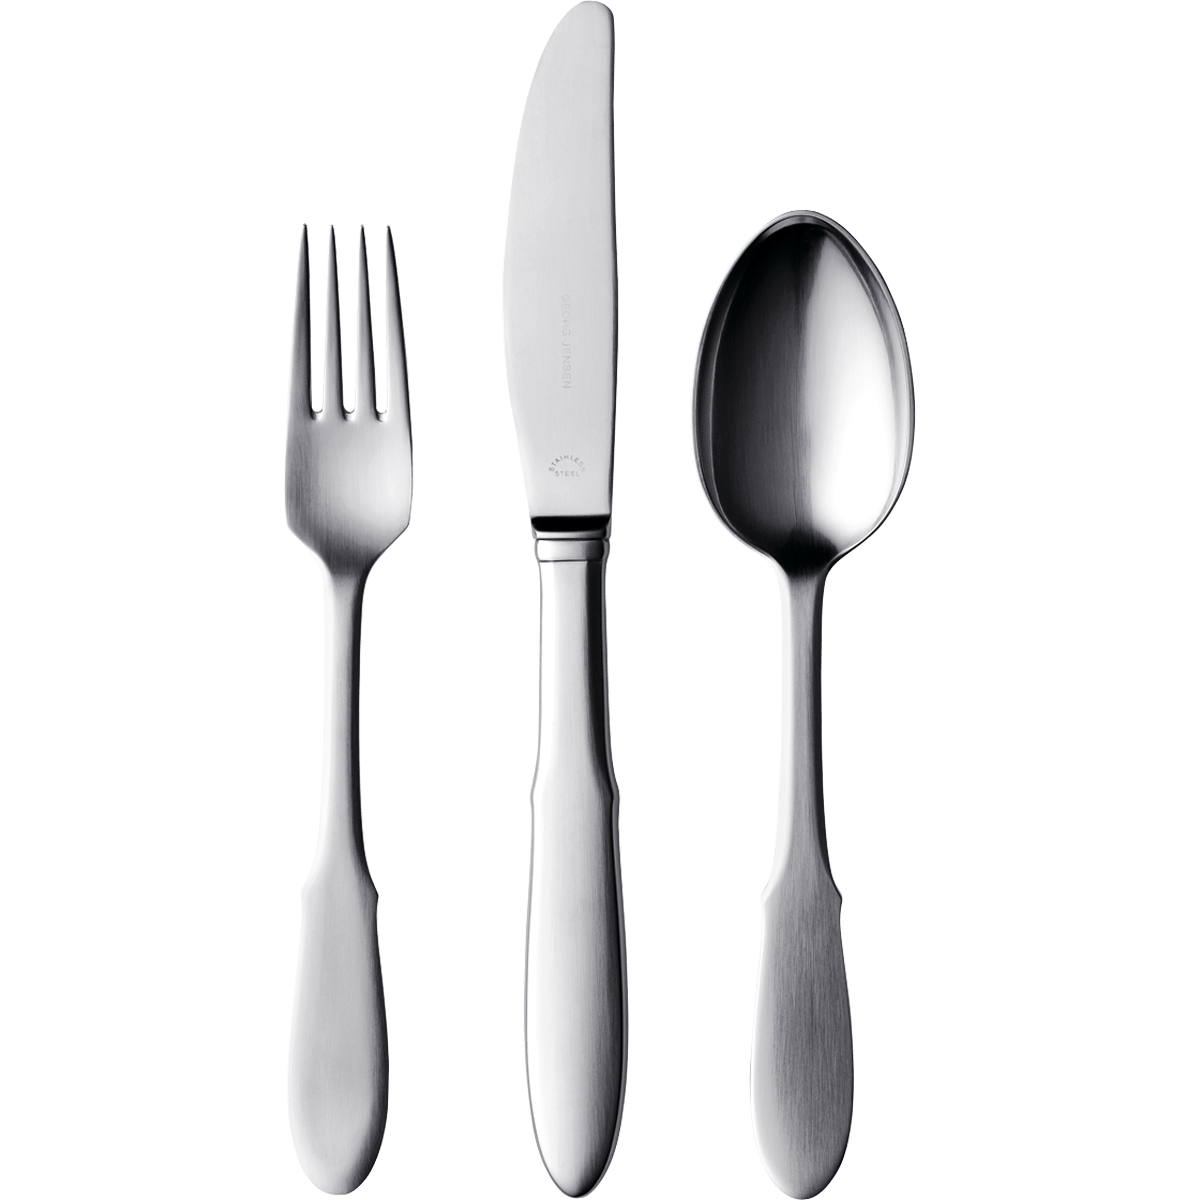 Hotel clipart spoon. Knife fork transparent png